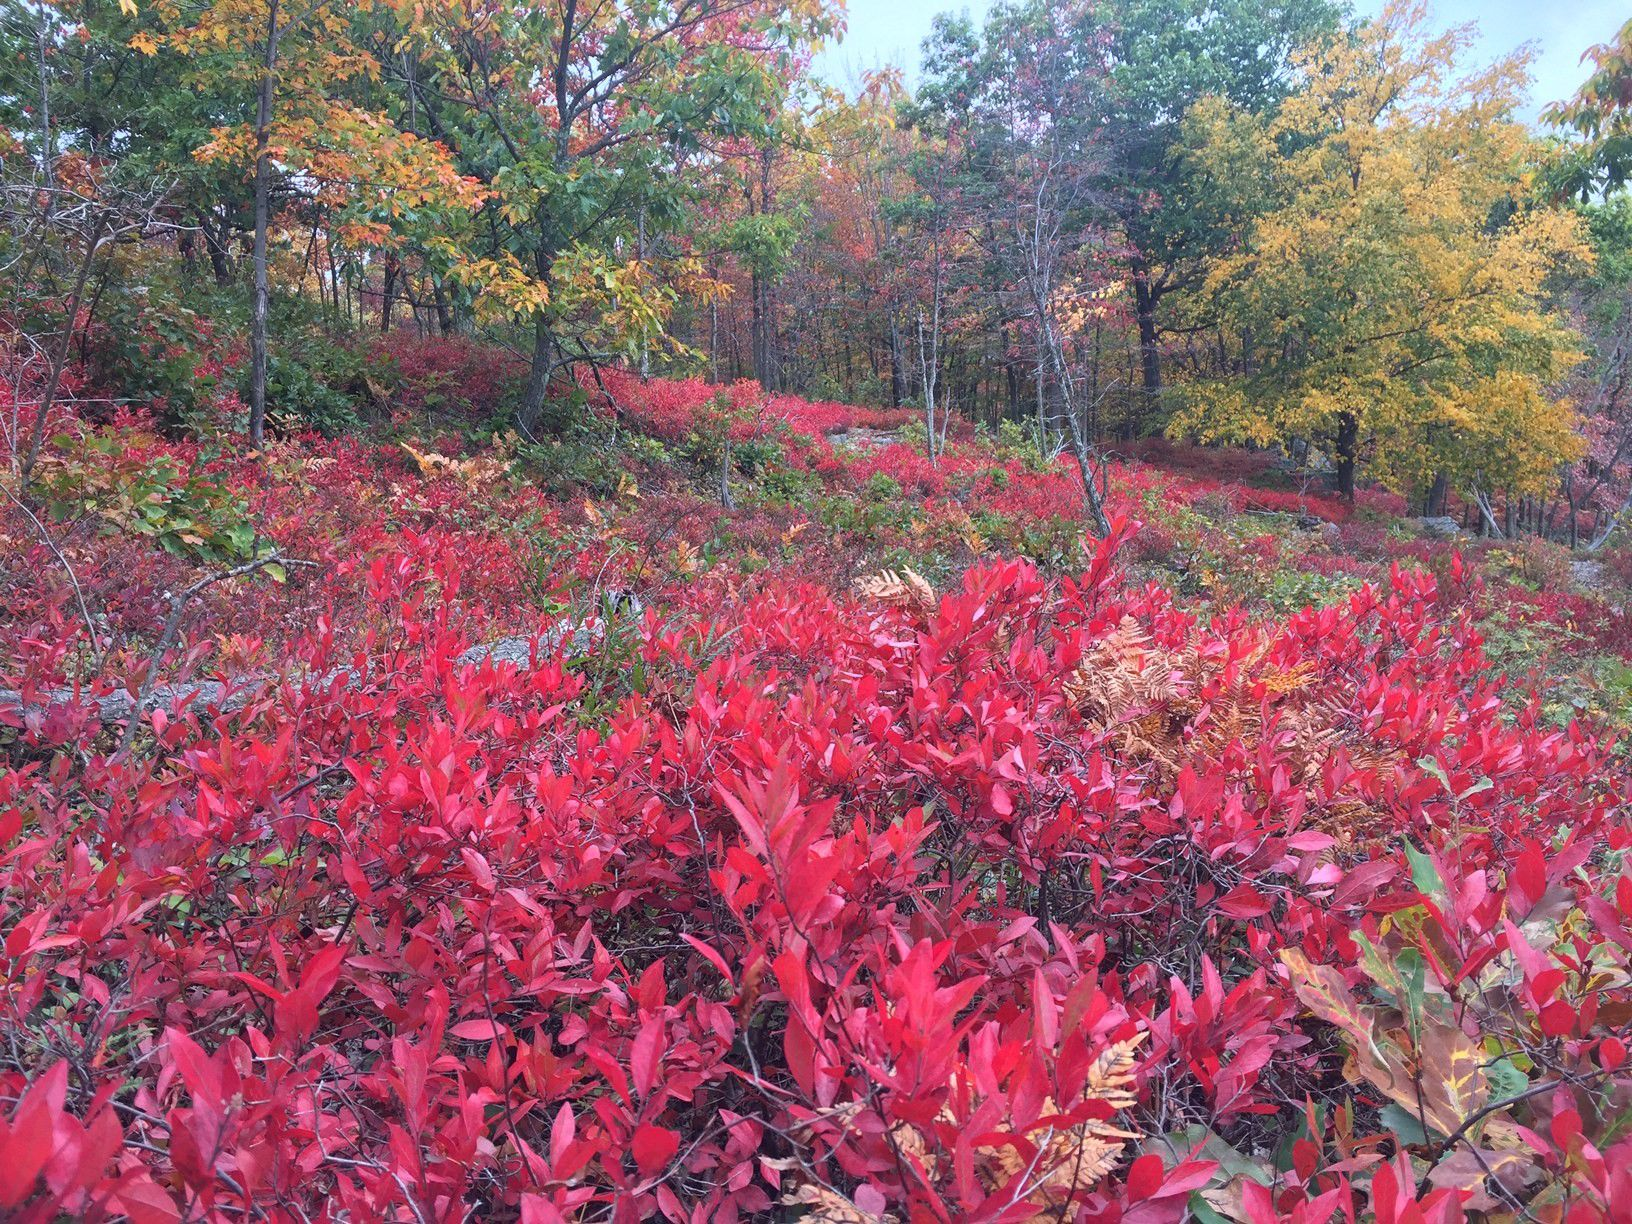 Low shrubs with brilliant red leaves dominate the foreground, obscuring the view of a narrow foot path that curves behind them into the woods.